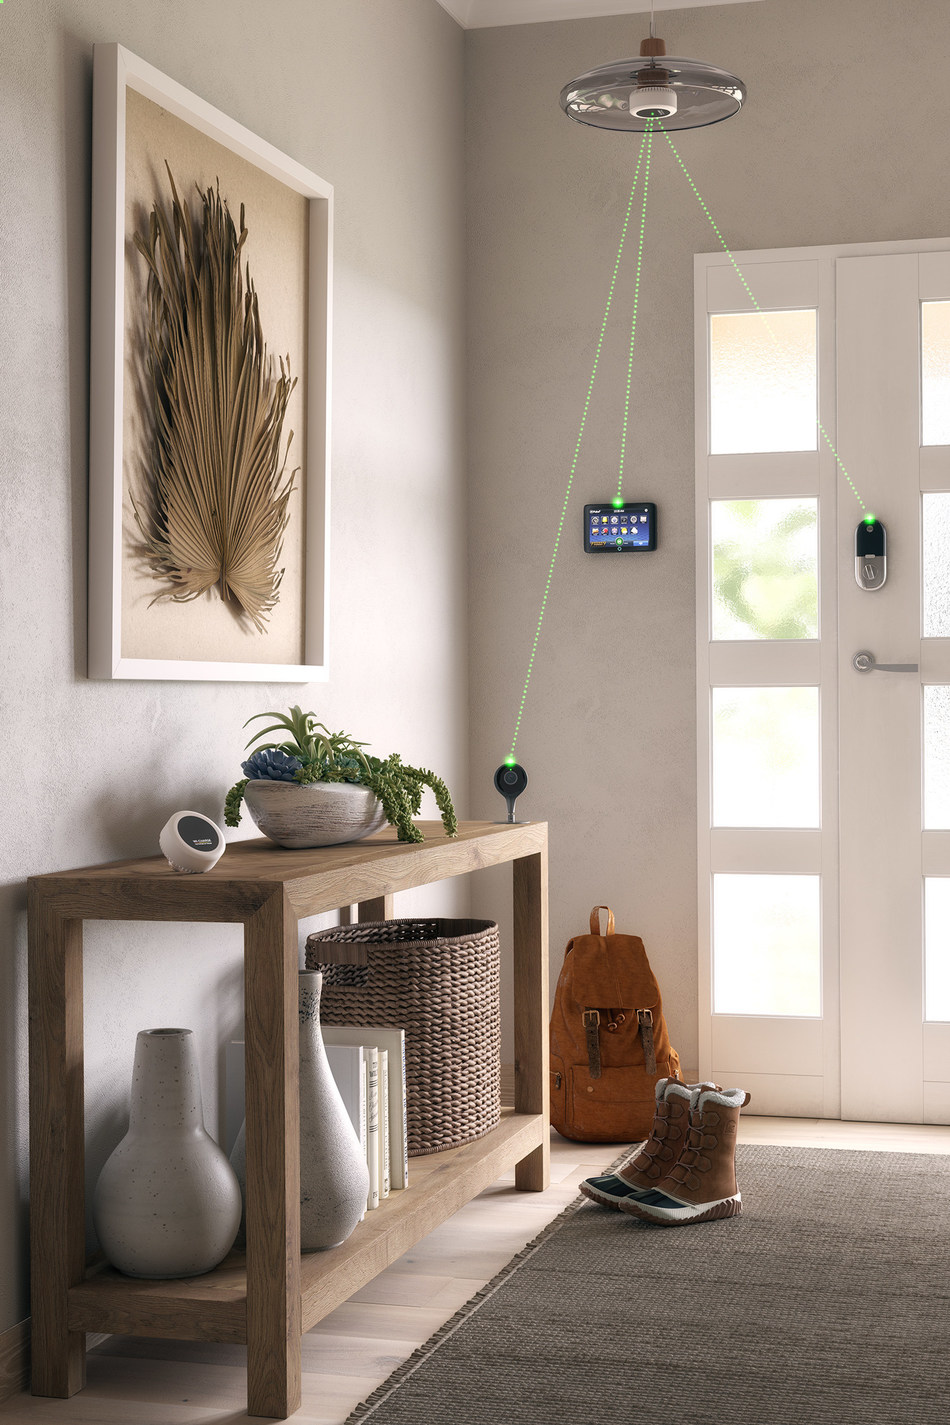 Wi-Charge PowerPuck long-range wireless charging system, installed in a light fixture, delivering power to home security devices. Energy is delivered using safe and invisible IR light. Green charging lines are for illustration purposes.